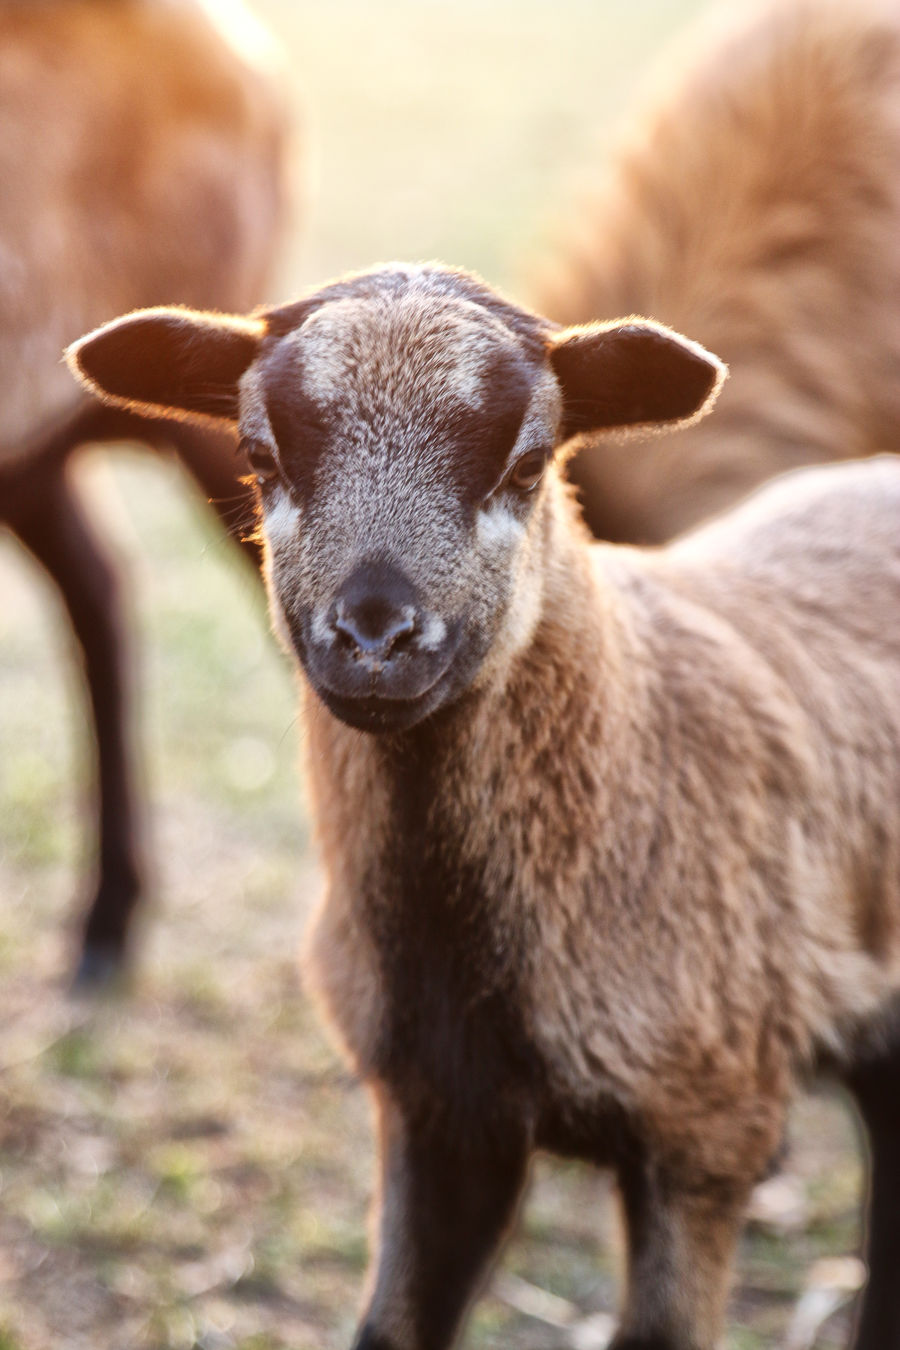 Animal Themes Animals Close-up Domestic Animals Goat Goatling Nature No People One Animal Outdoors